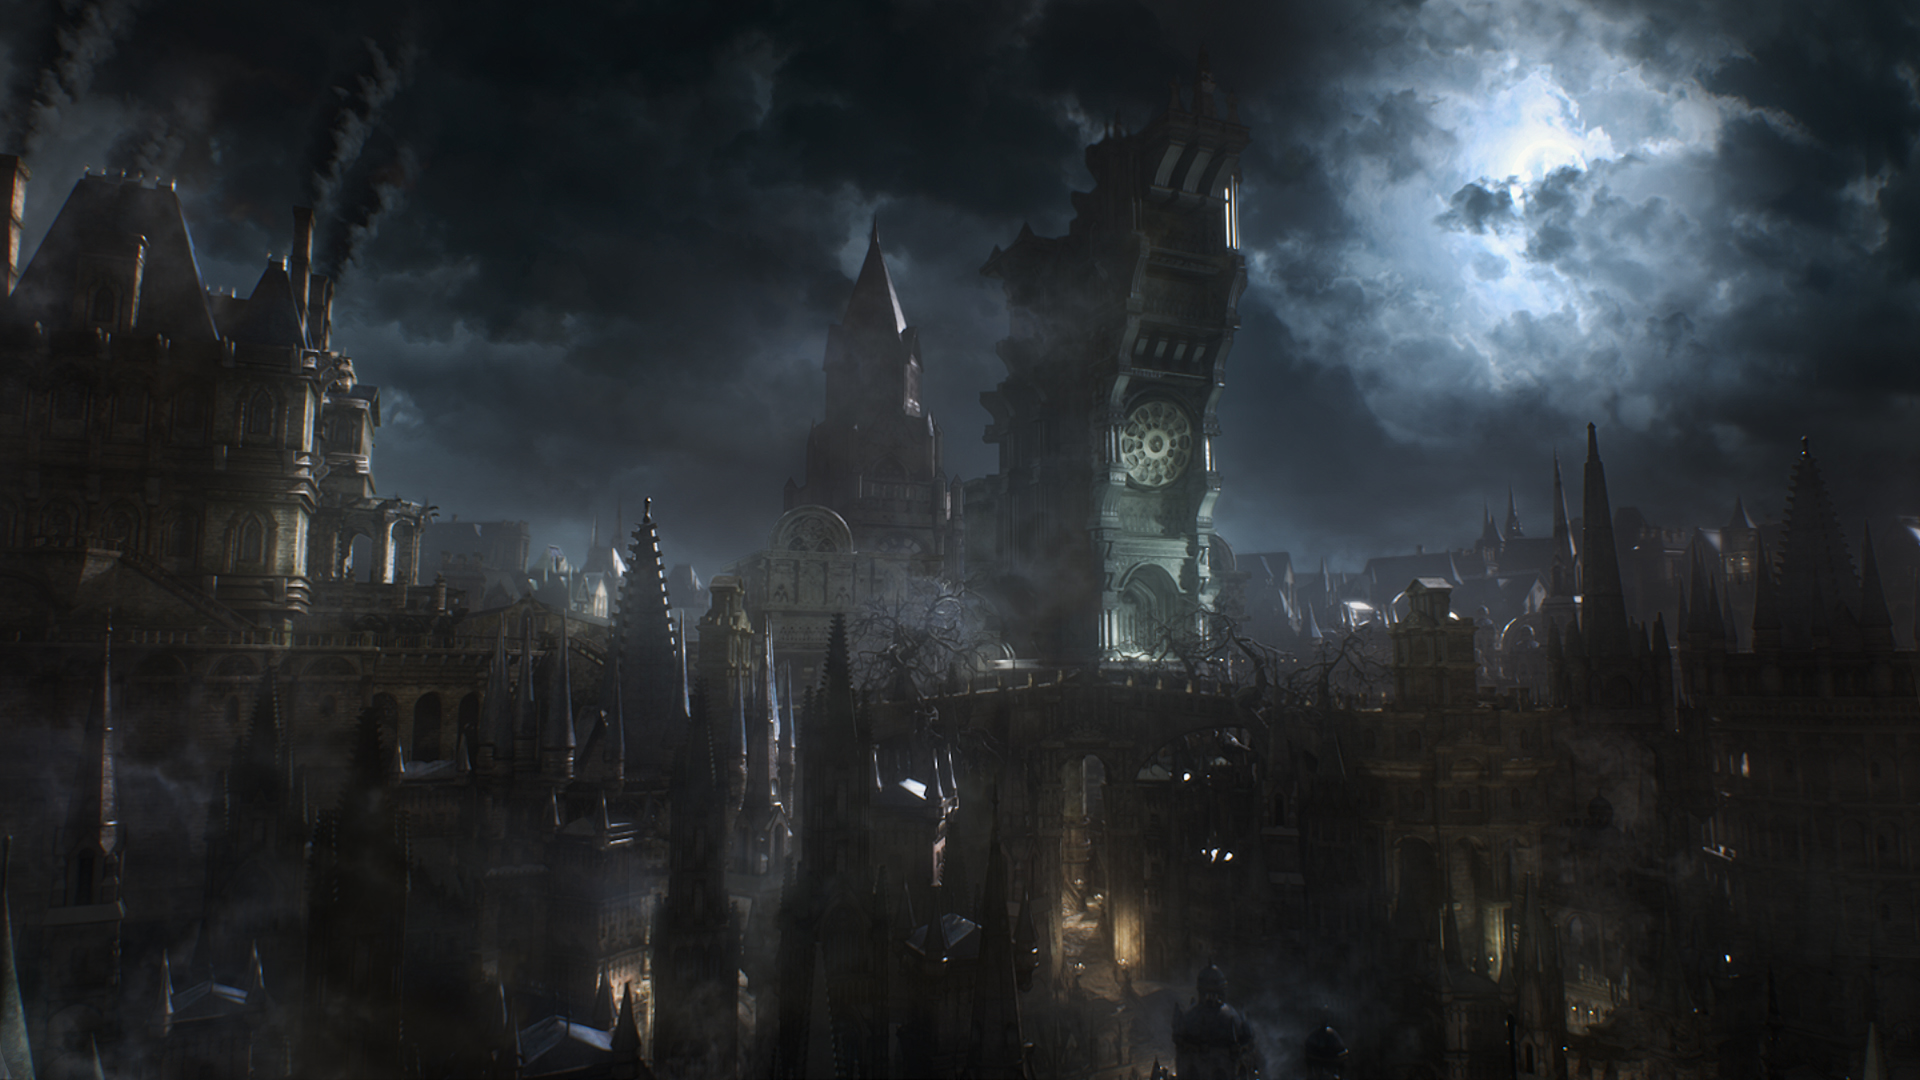 Space Demonic Art Hd Wallpaper: Bloodborne Wallpapers, Pictures, Images